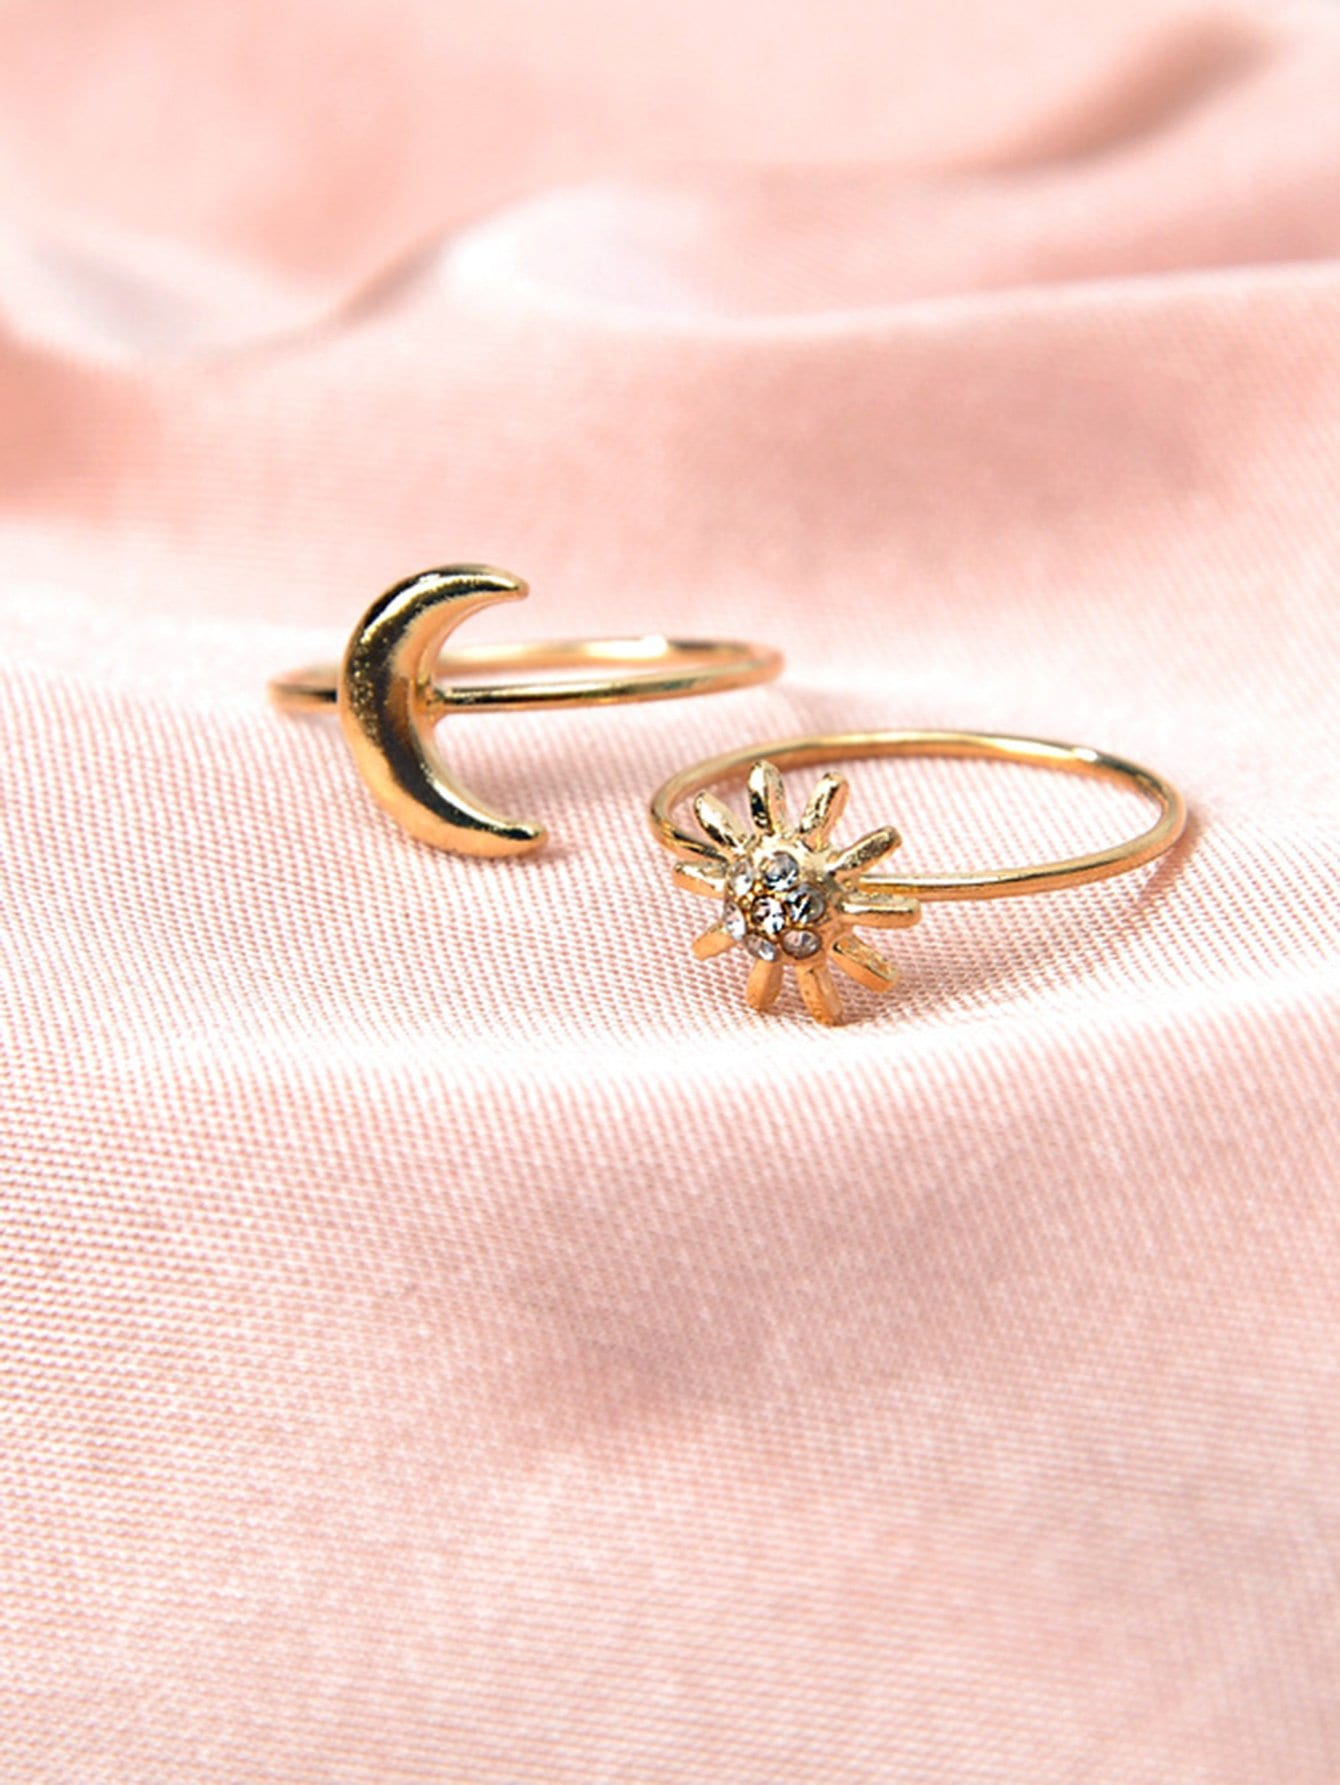 rings ring rg gold img rose enlarge mini moon